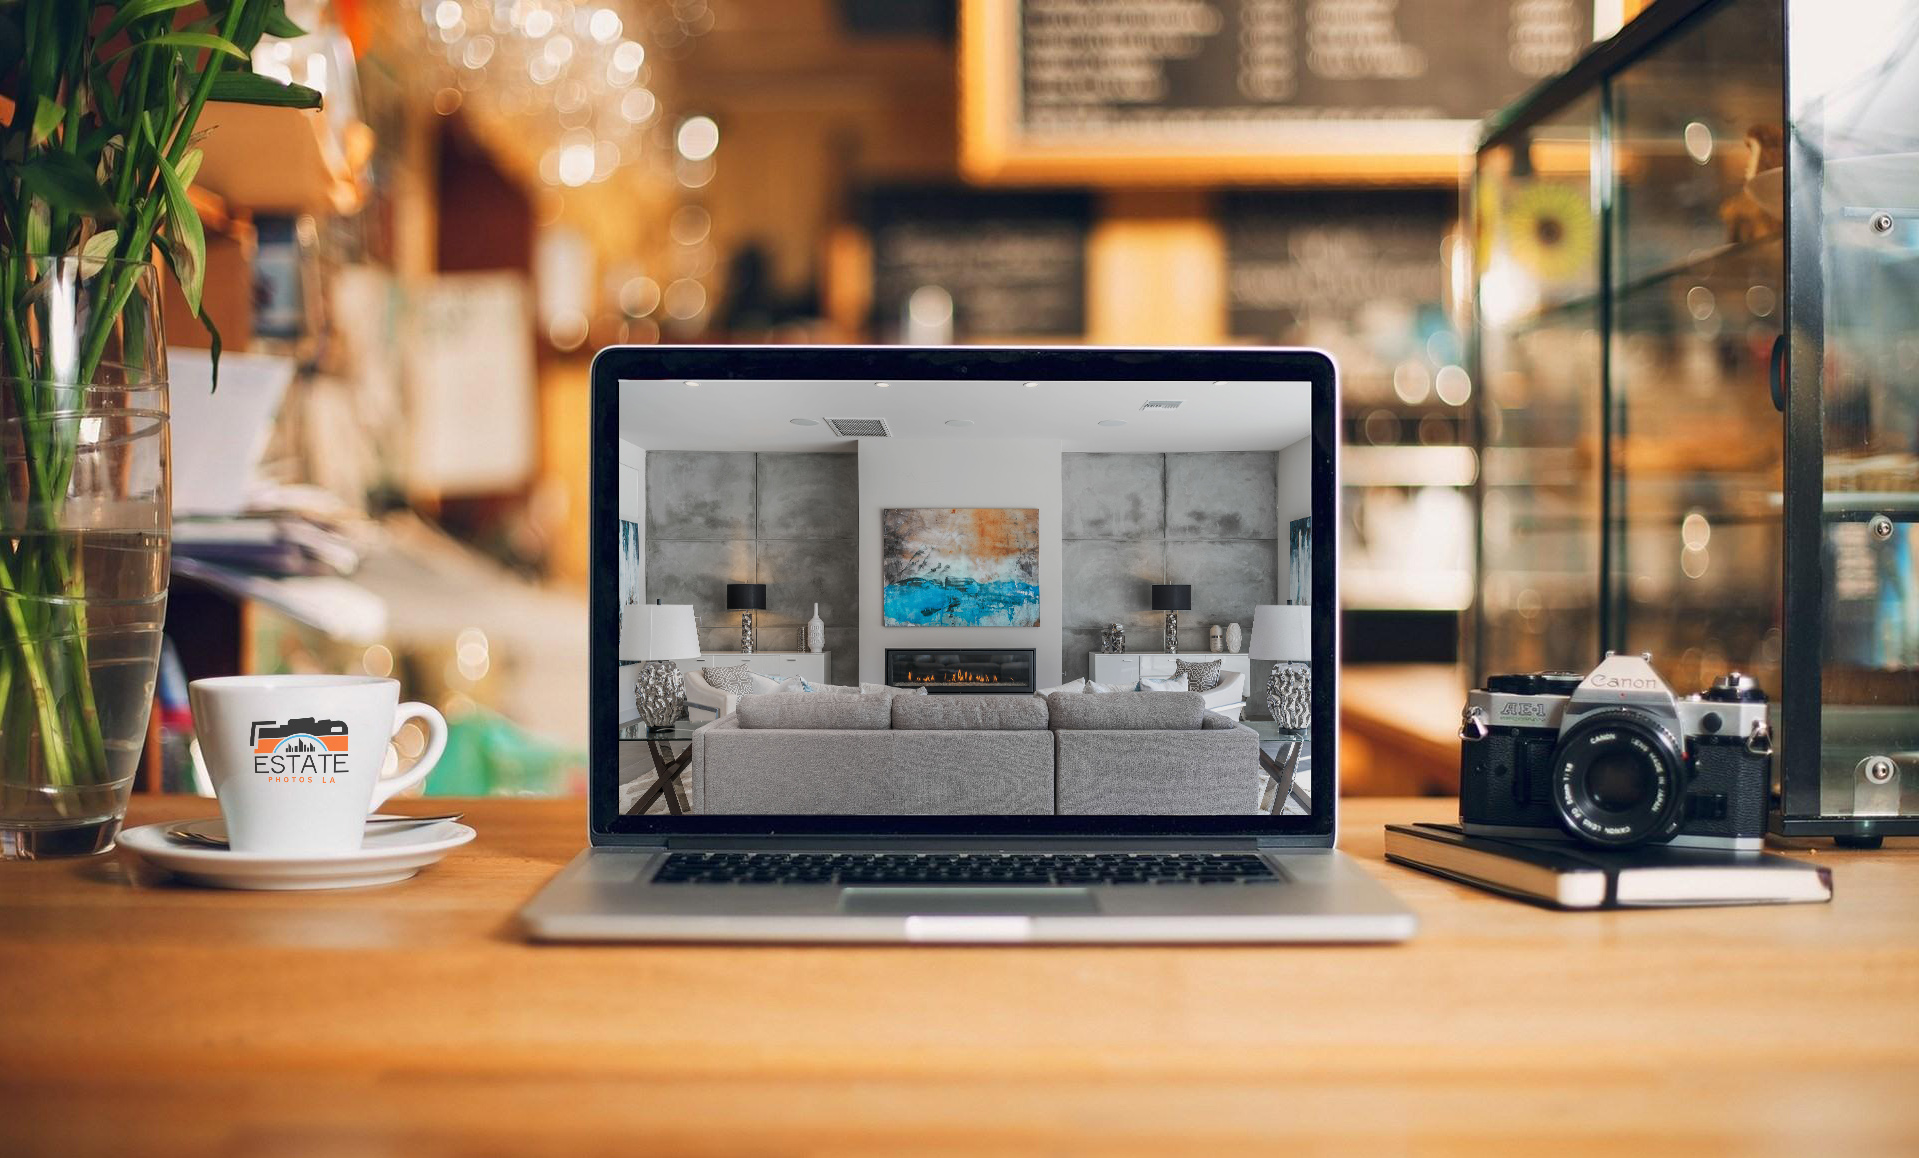 Real Estate Photography & Videography Pricing List by estate phots LA